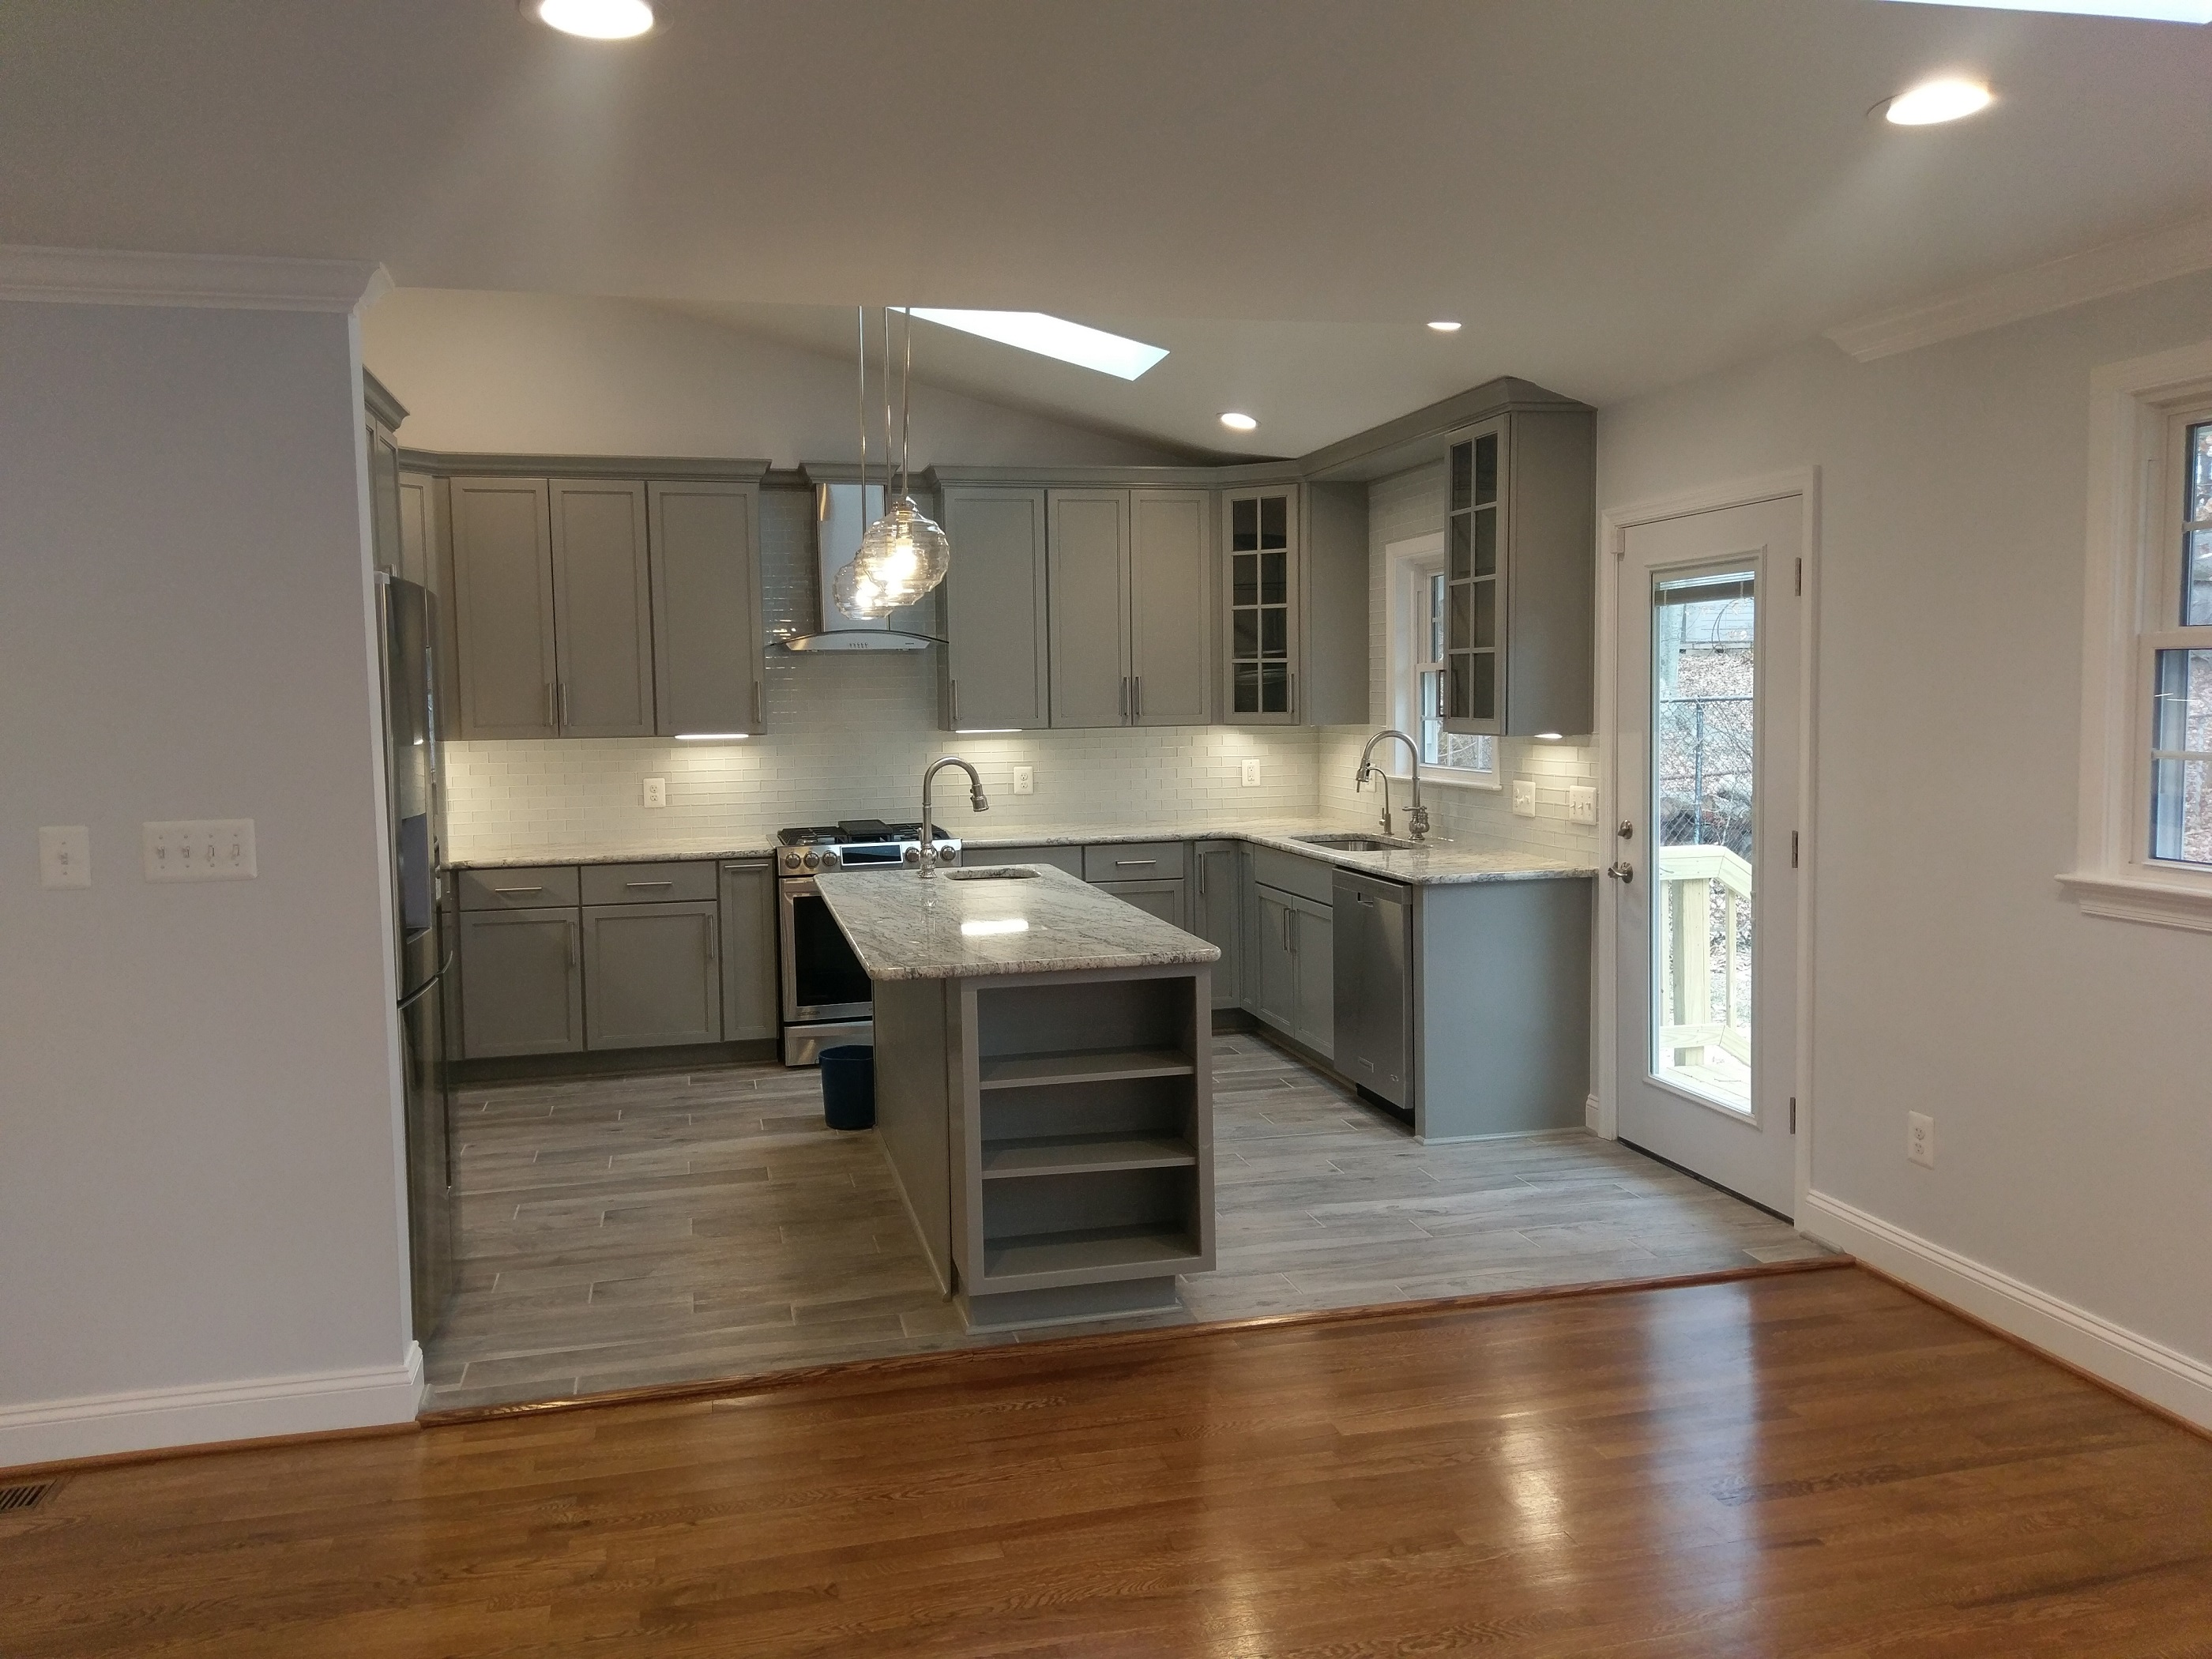 Lorton virginia home remodeling contractor elite for Kitchen and bath contractors